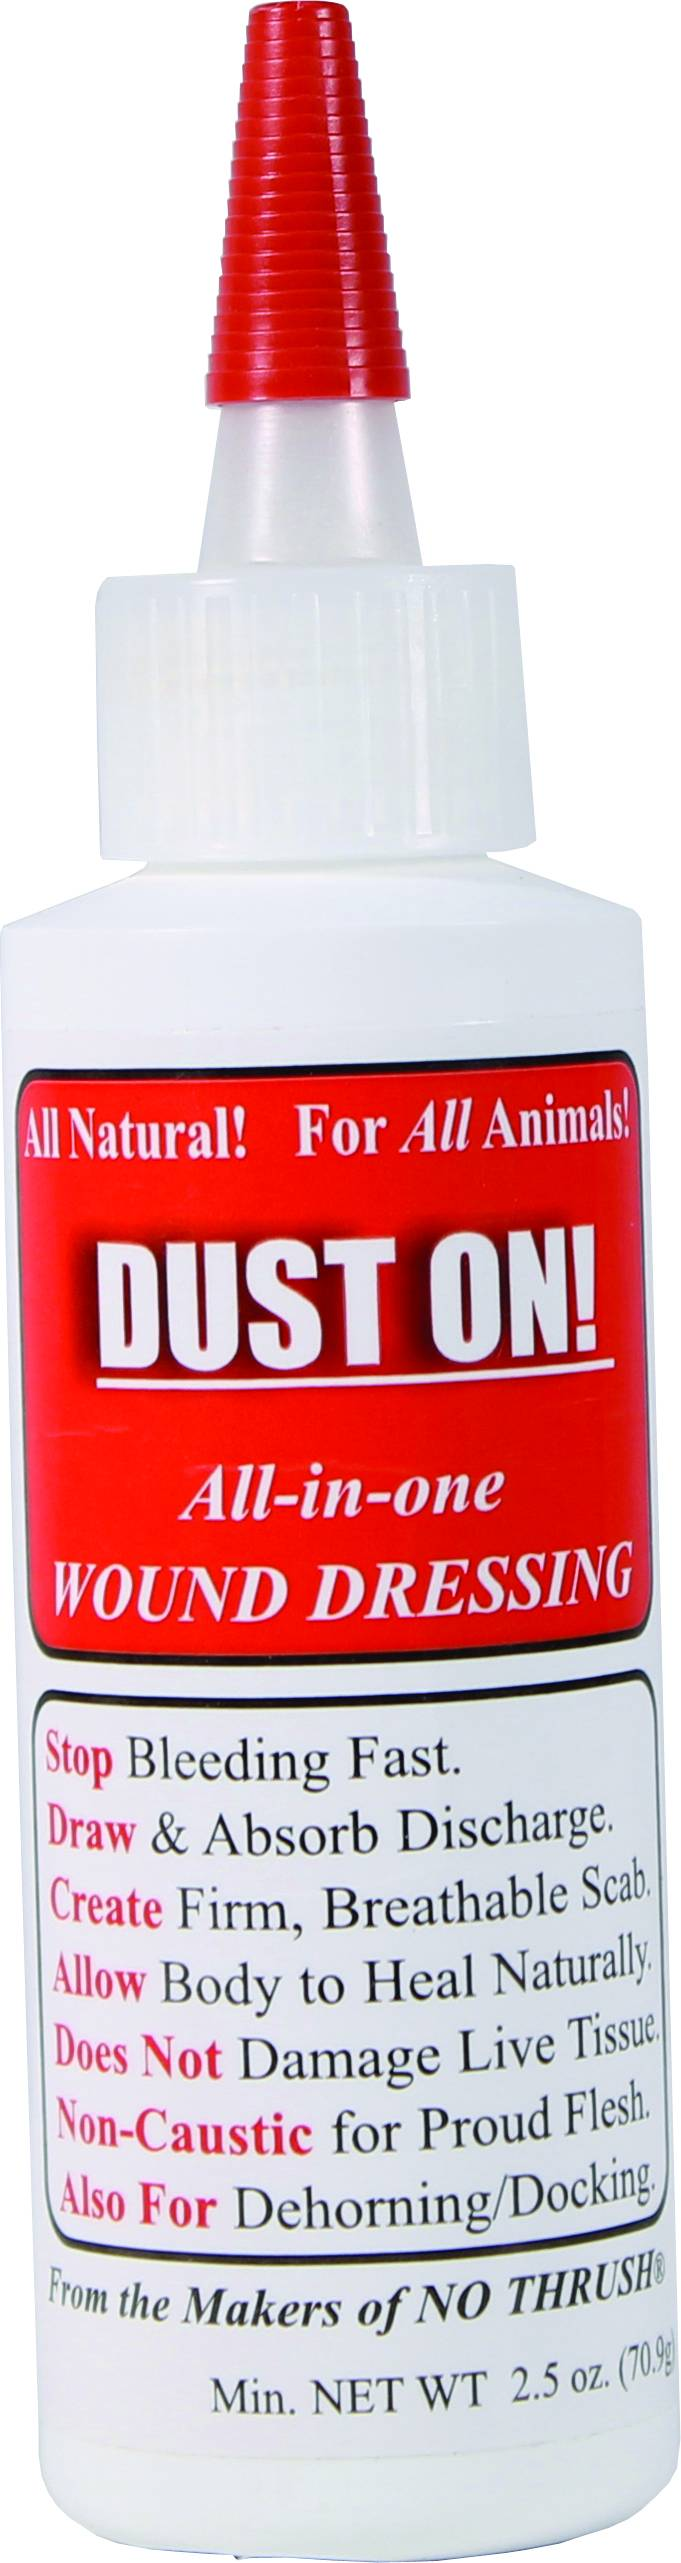 Dust-On All In One Wound Dressing